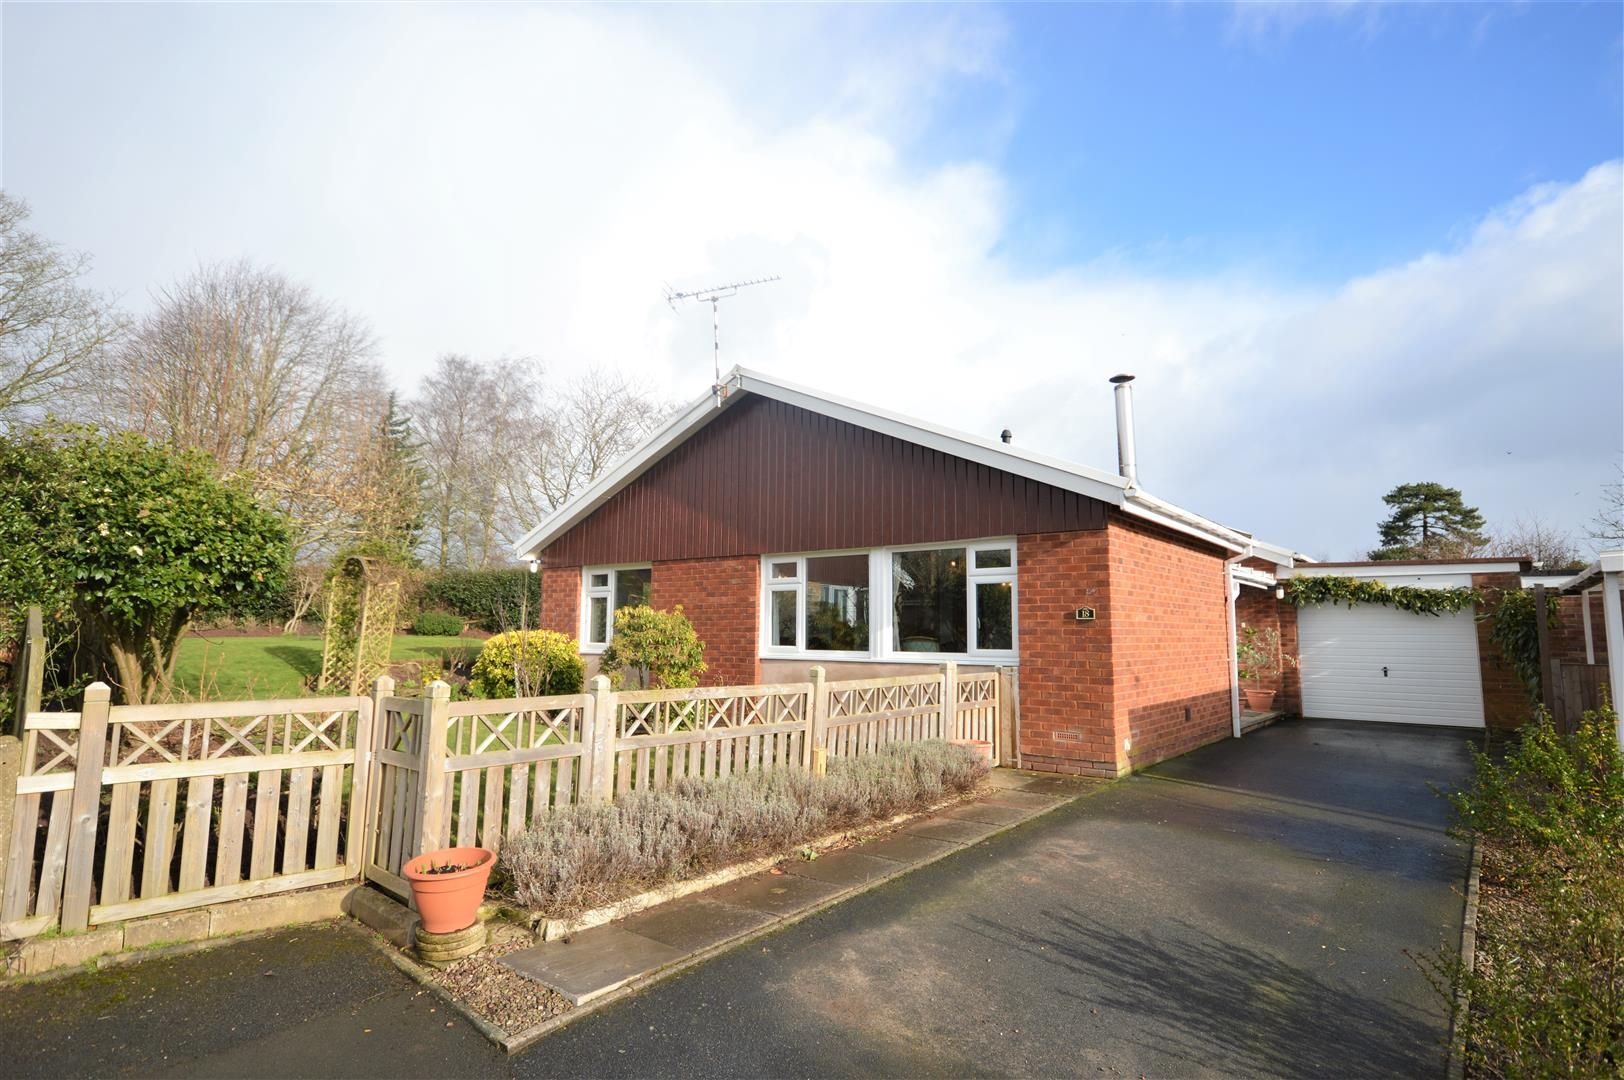 3 bed semi-detached-bungalow for sale in Almeley, HR3